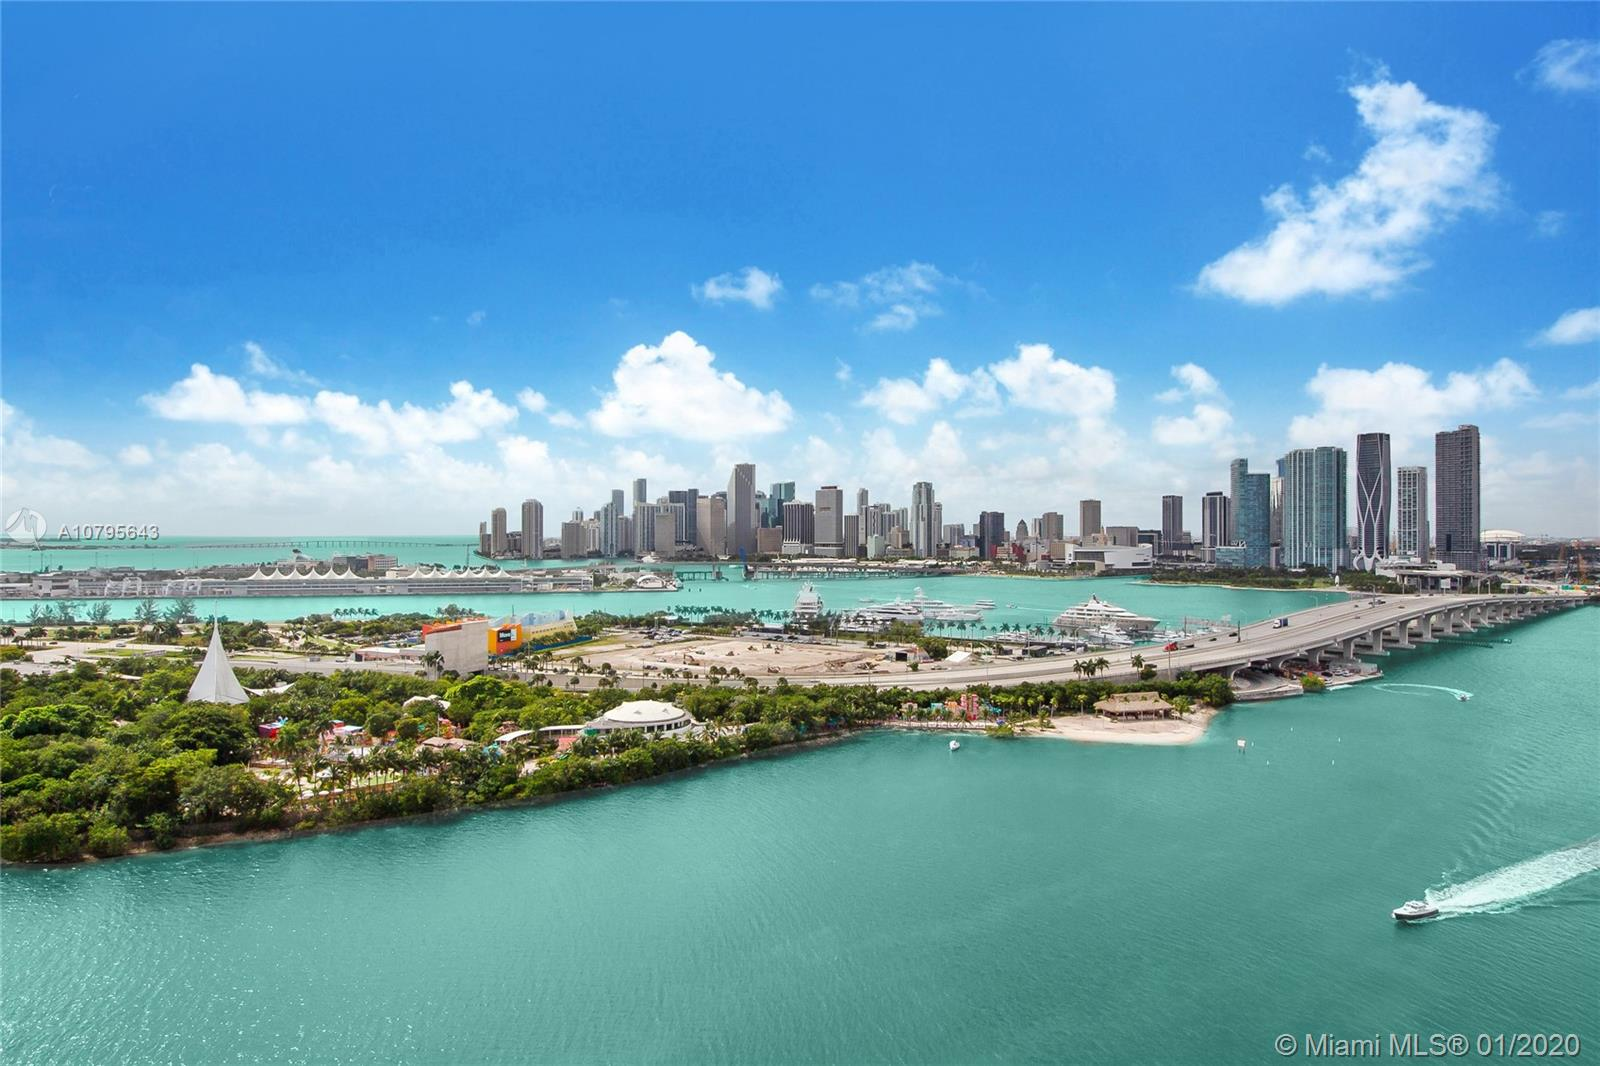 Panoramic views of Biscayne Bay & the Miami skyline from this rarely available penthouse at 1000 Venetian. This full-floor penthouse offers 4,276 sq/ft under A/C, surrounded by over 9 foot tall walls of glass doors leading to an additional 1,713 sq/ft of terrace space that is perfect for entertaining. (sq/ft per architect) The apartment has south, west & north exposures, with all rooms opening directly to the oversized terraces and unobstructed water views in every direction. The apartment was originally designed to be a 5bed/5.5bath but was redesigned into its current layout as a 2bed/3bath. This is a unique opportunity to own a large penthouse with the most amazing views in town, on the red-hot Venetian Islands! Easy to show.